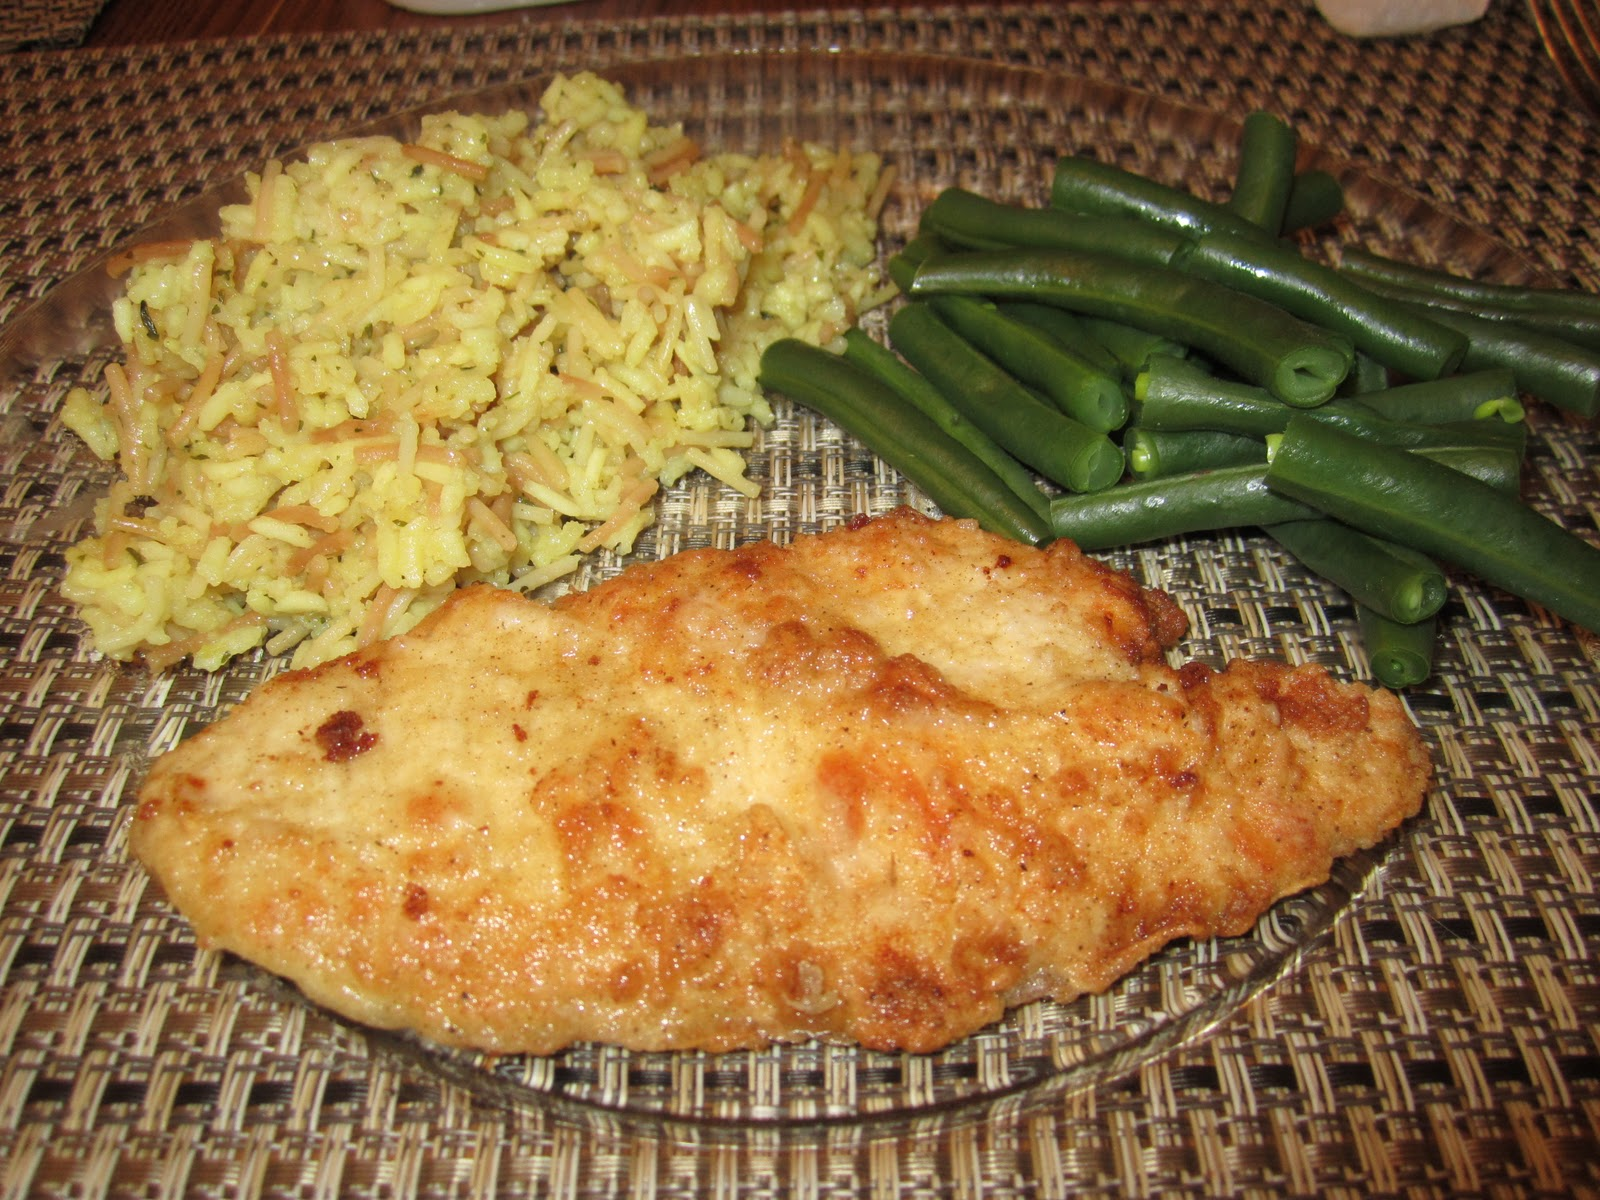 Dinner recipe chicken scallopini steamed green beans and rice dinner recipe chicken scallopini steamed green beans and rice forumfinder Choice Image